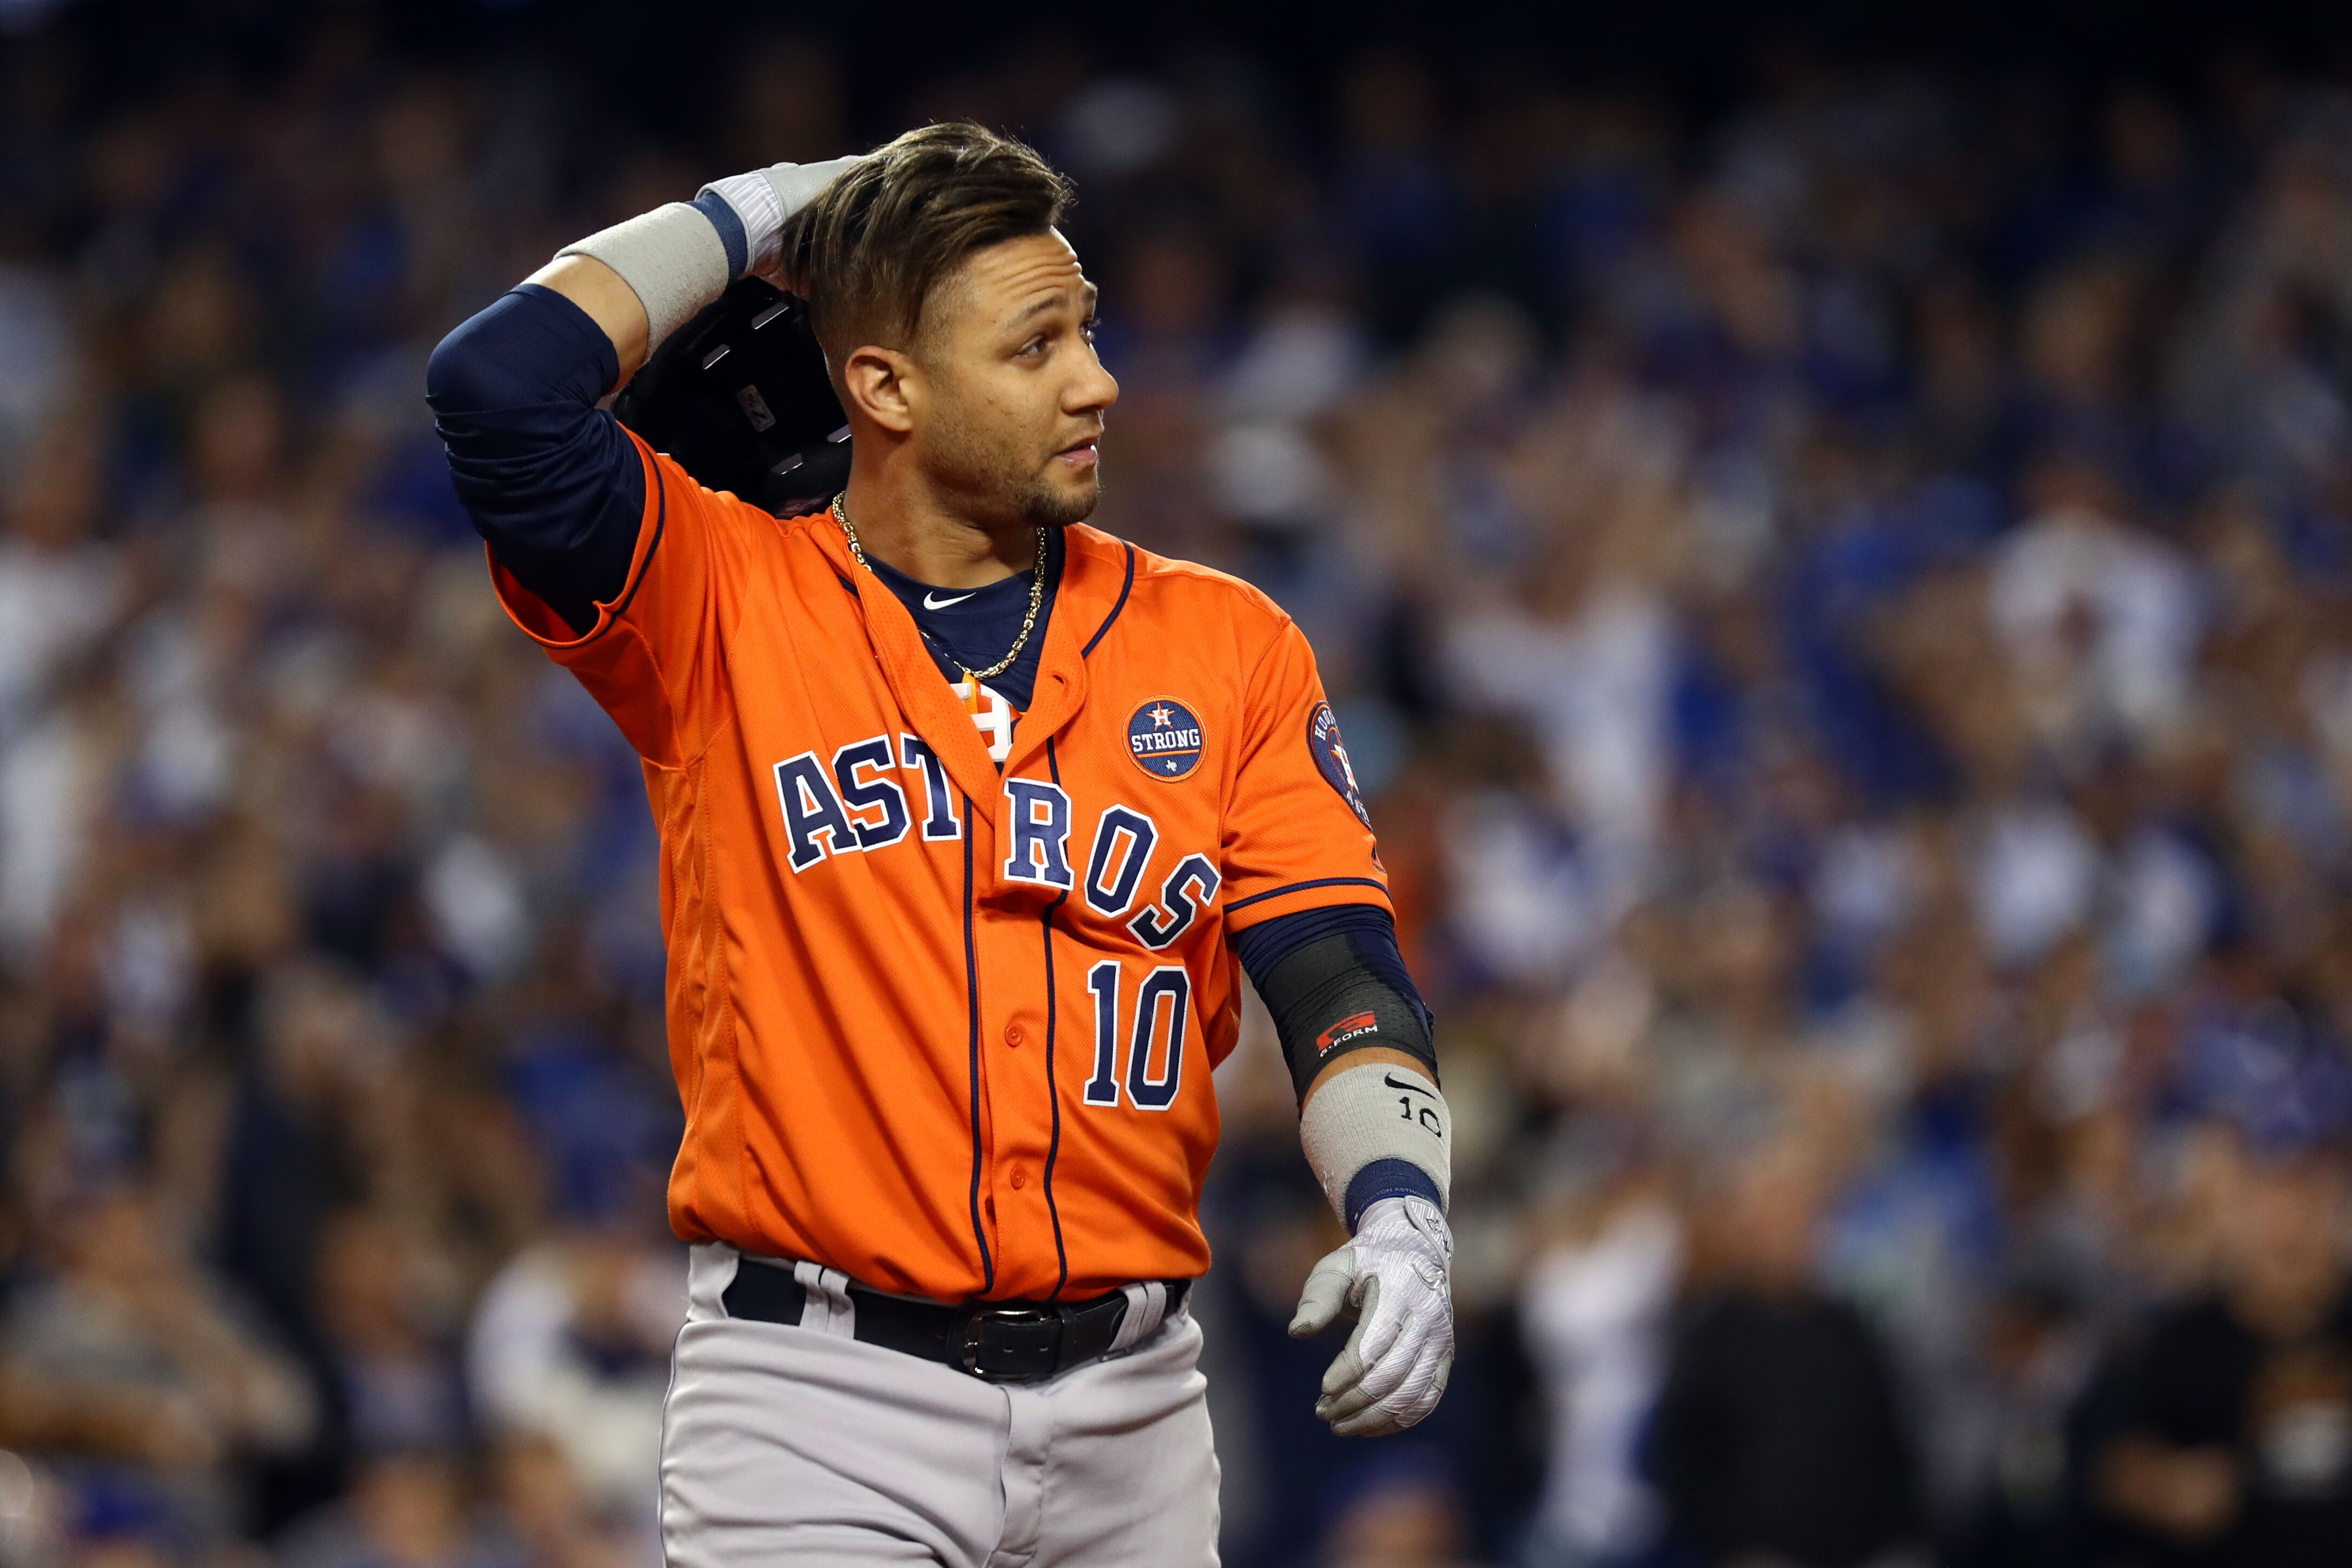 Yuli Gurriel's suspension is going to have to wait